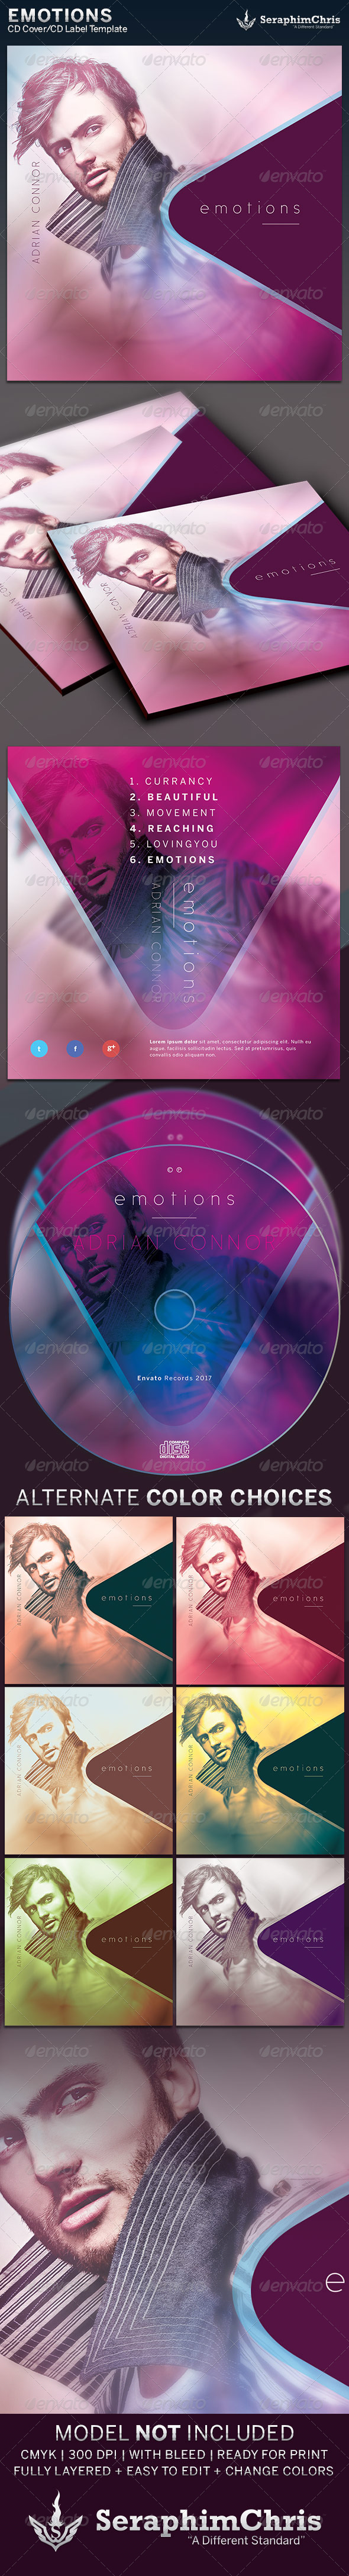 Emotions: CD Cover Artwork Template - CD & DVD Artwork Print Templates